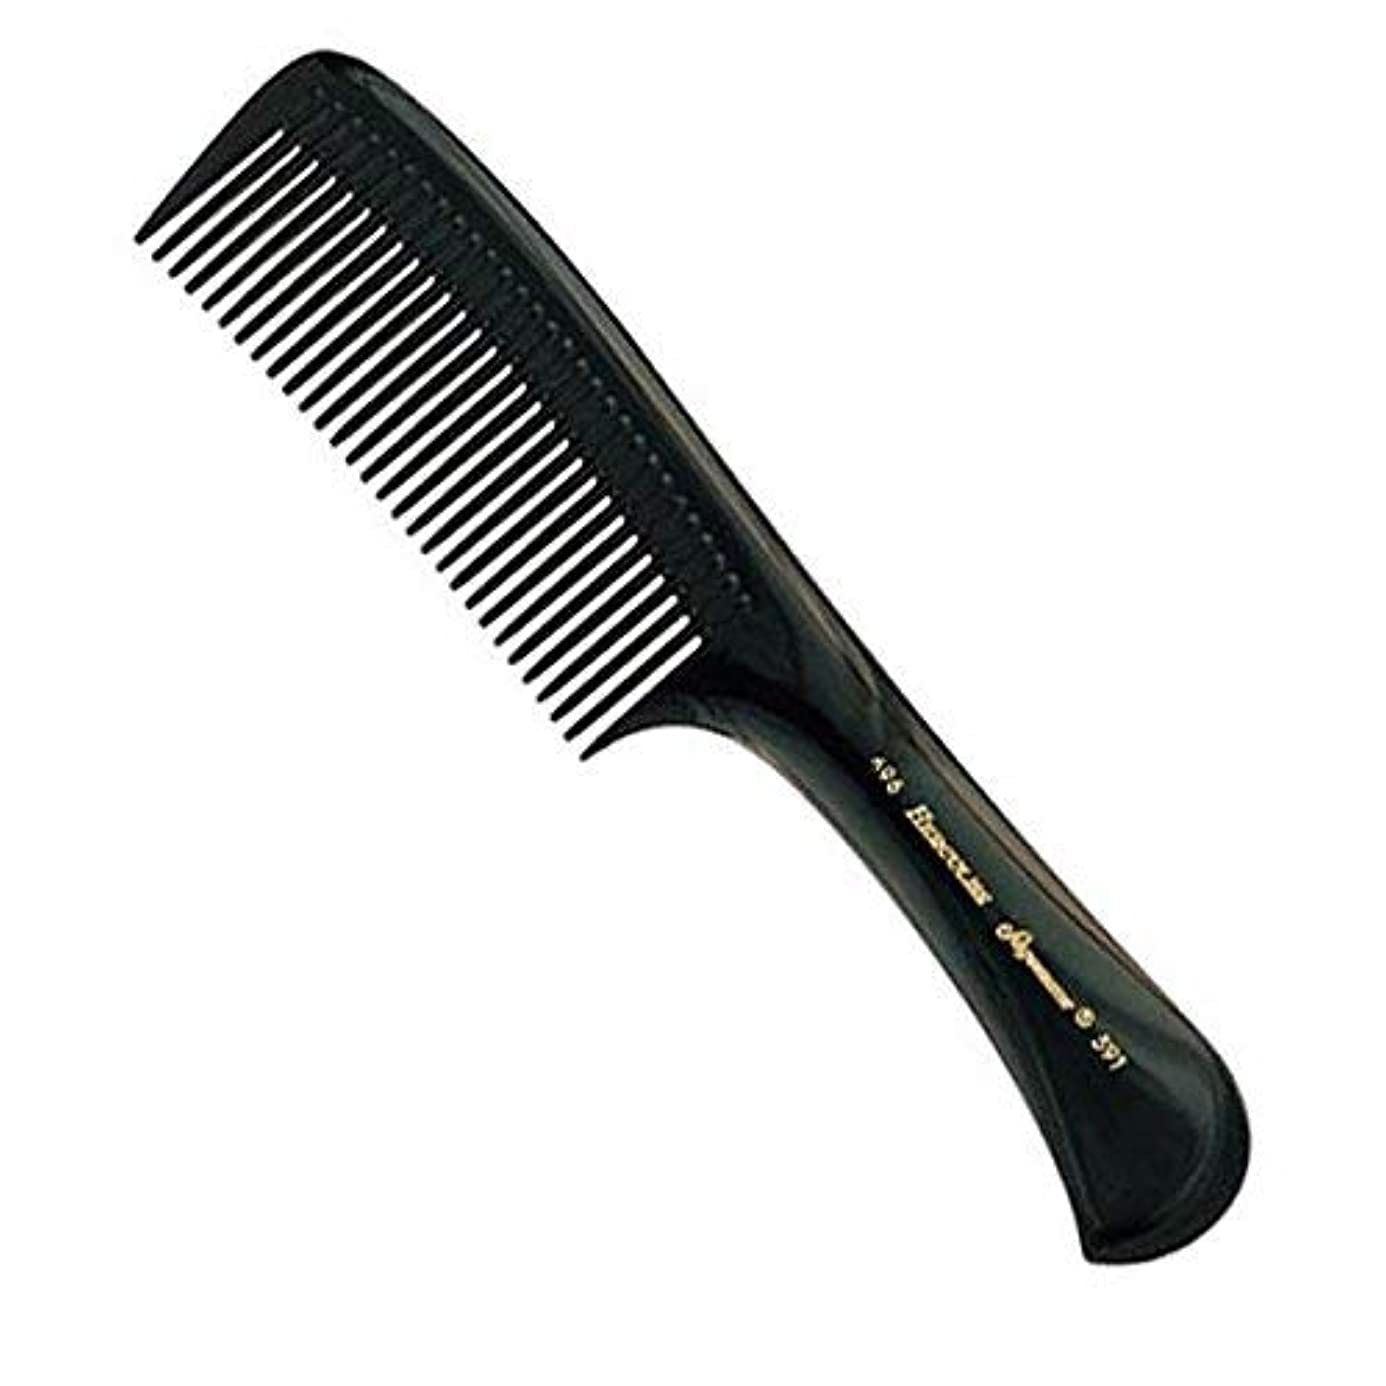 凍ったキャプション副詞Hercules Sagemann Seamless Handle Detangling Hair Comb, 22.7 cm Length [並行輸入品]